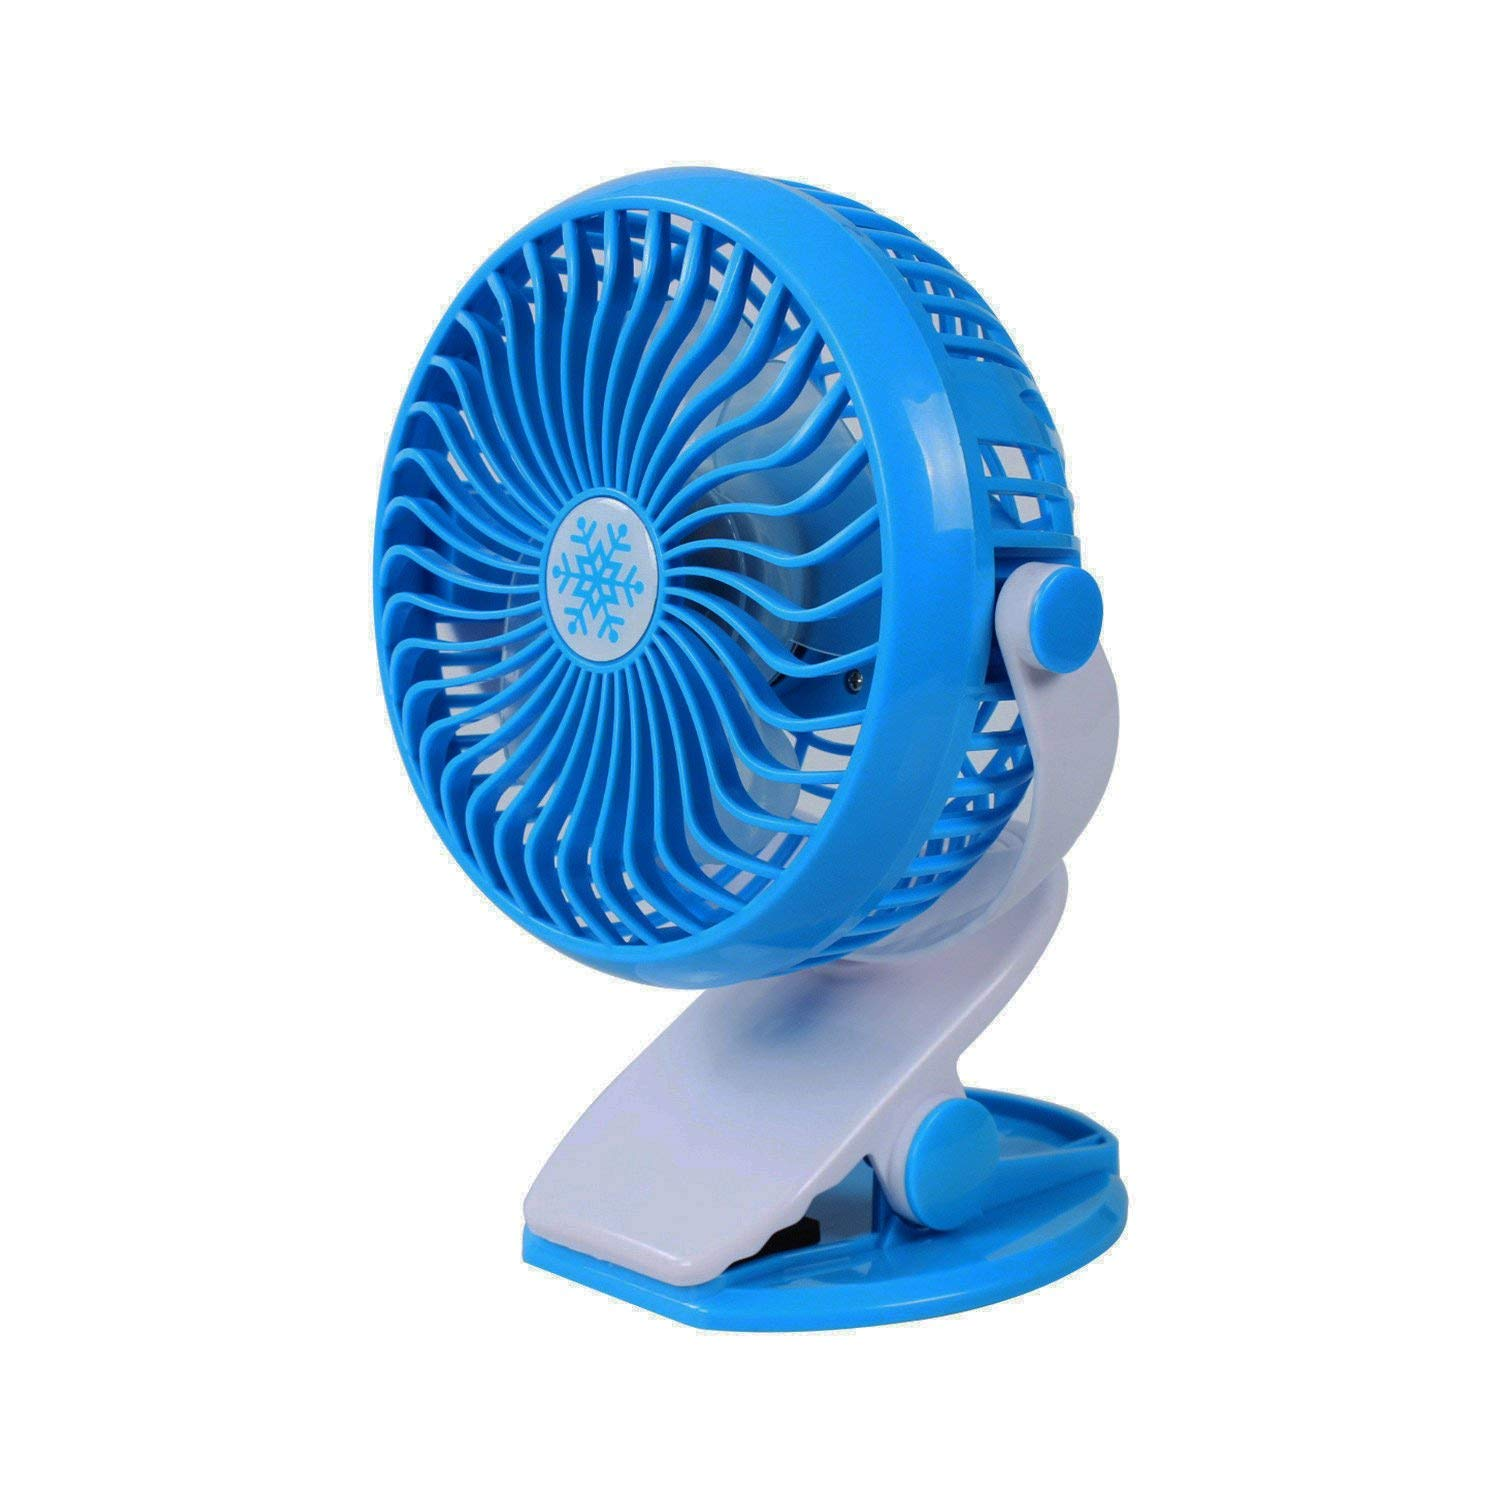 Battery Clip Fan Portable Table Fan Powered by 2000mA Rechargeable Battery or USB Charging Cable, Table-Top & Clip on Fan, 360 Degree Rotation, Low Noise, Ideal for Home, Office, Dorm and Car - Blue